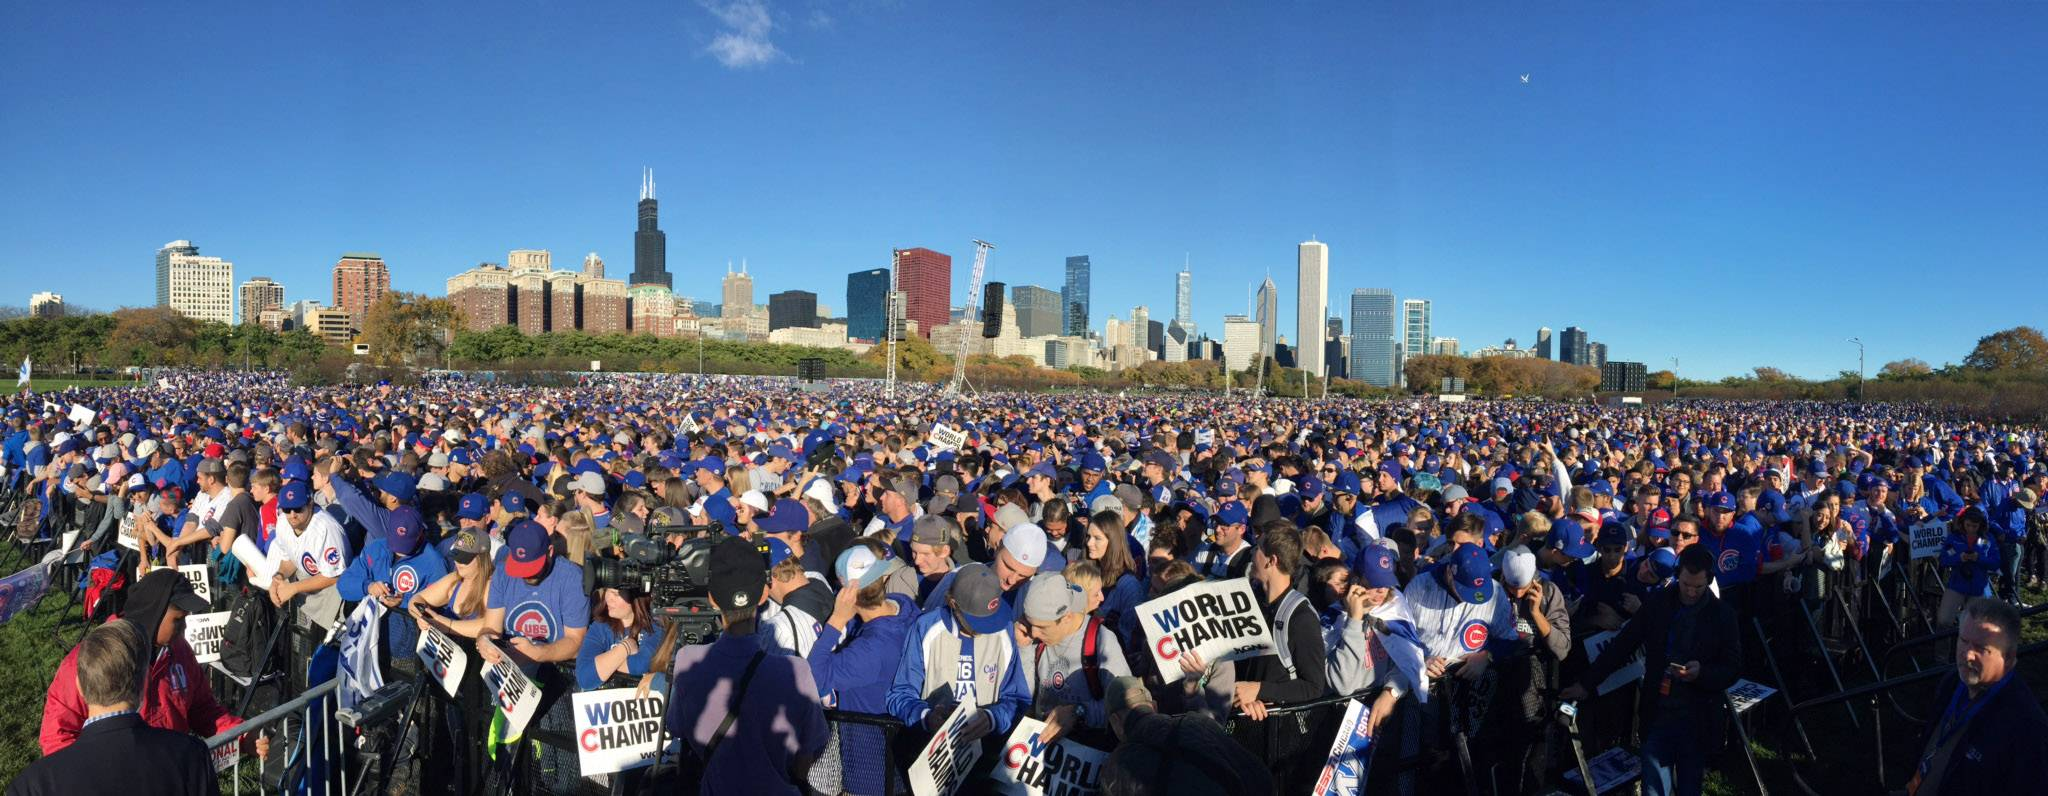 Millions celebrate at Cubs parade Grant Park rally